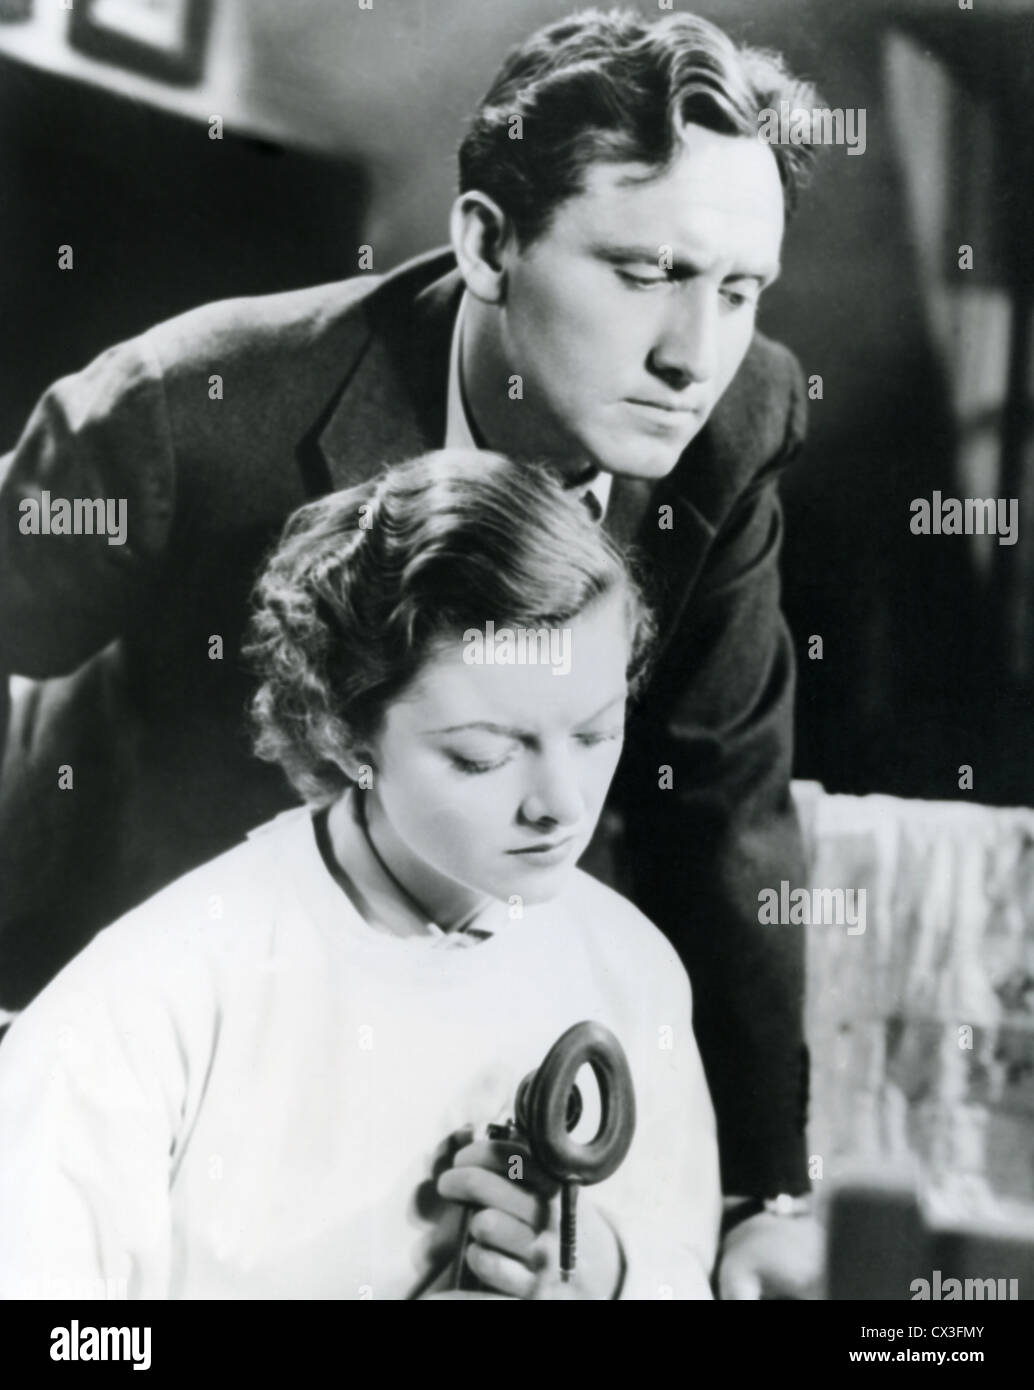 WHIPSAW (1936) MYRNA LOY, SPENCER TRACY SAM WOOD (DIR) 002 MOVIESTORE COLLECTION LTD - Stock Image